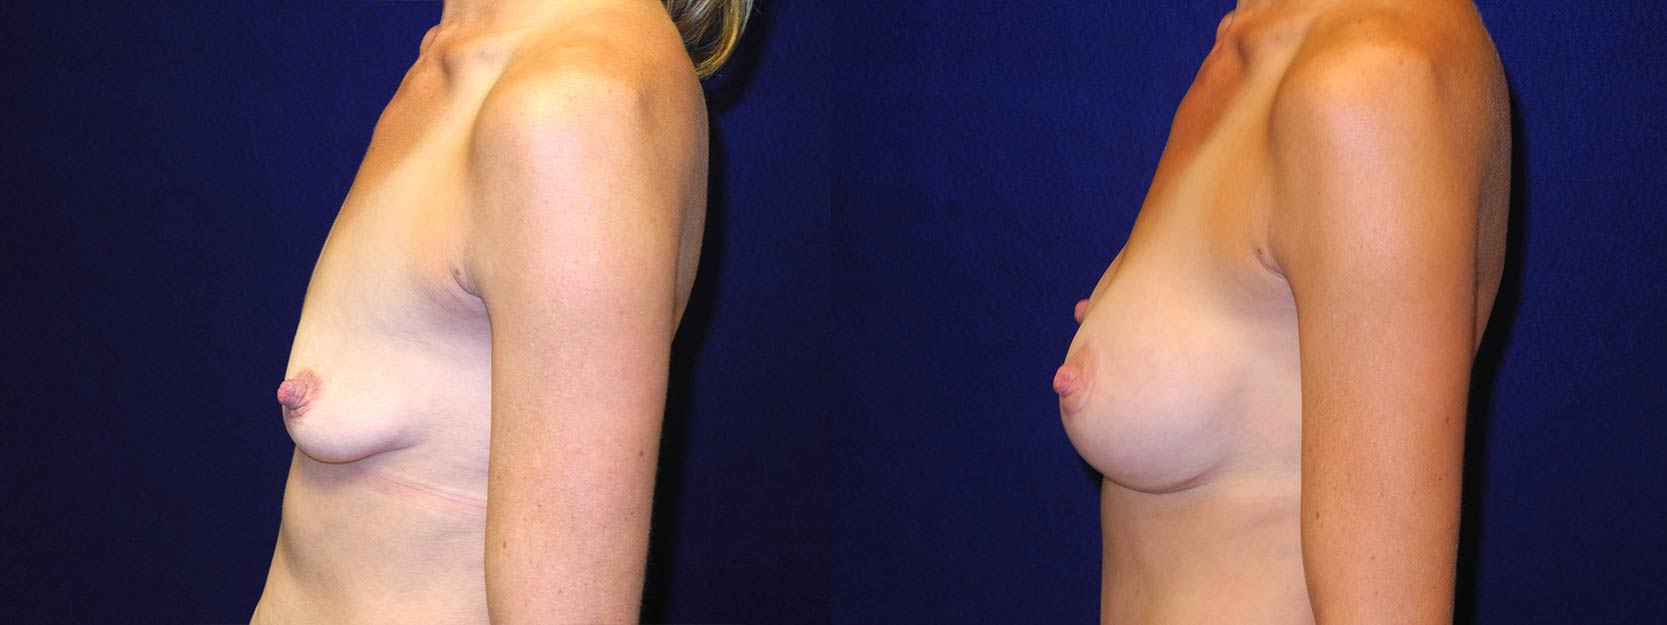 Left Profile View - Breast Augmentation After Pregnancy